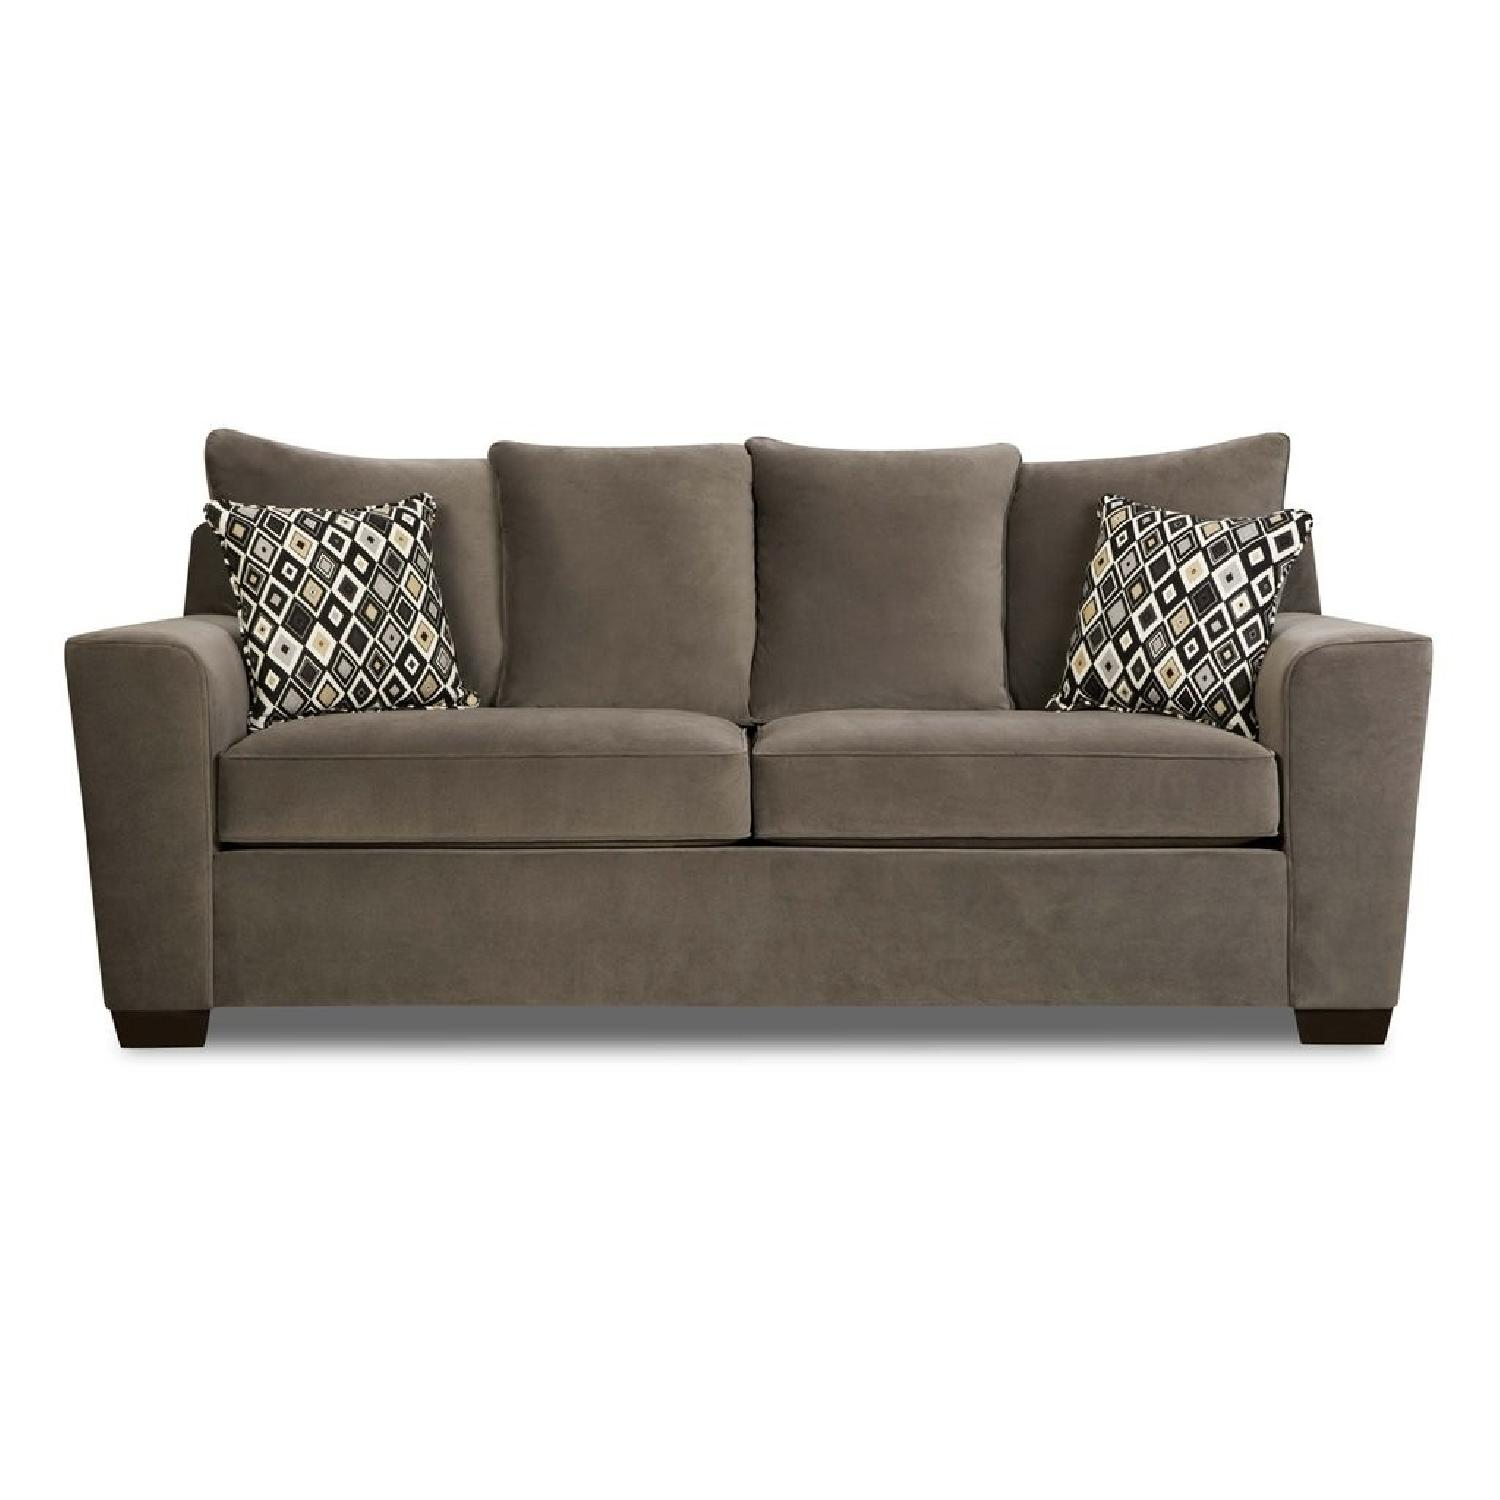 Jennifer Convertibles Bianca Gray Sleeper Sofa